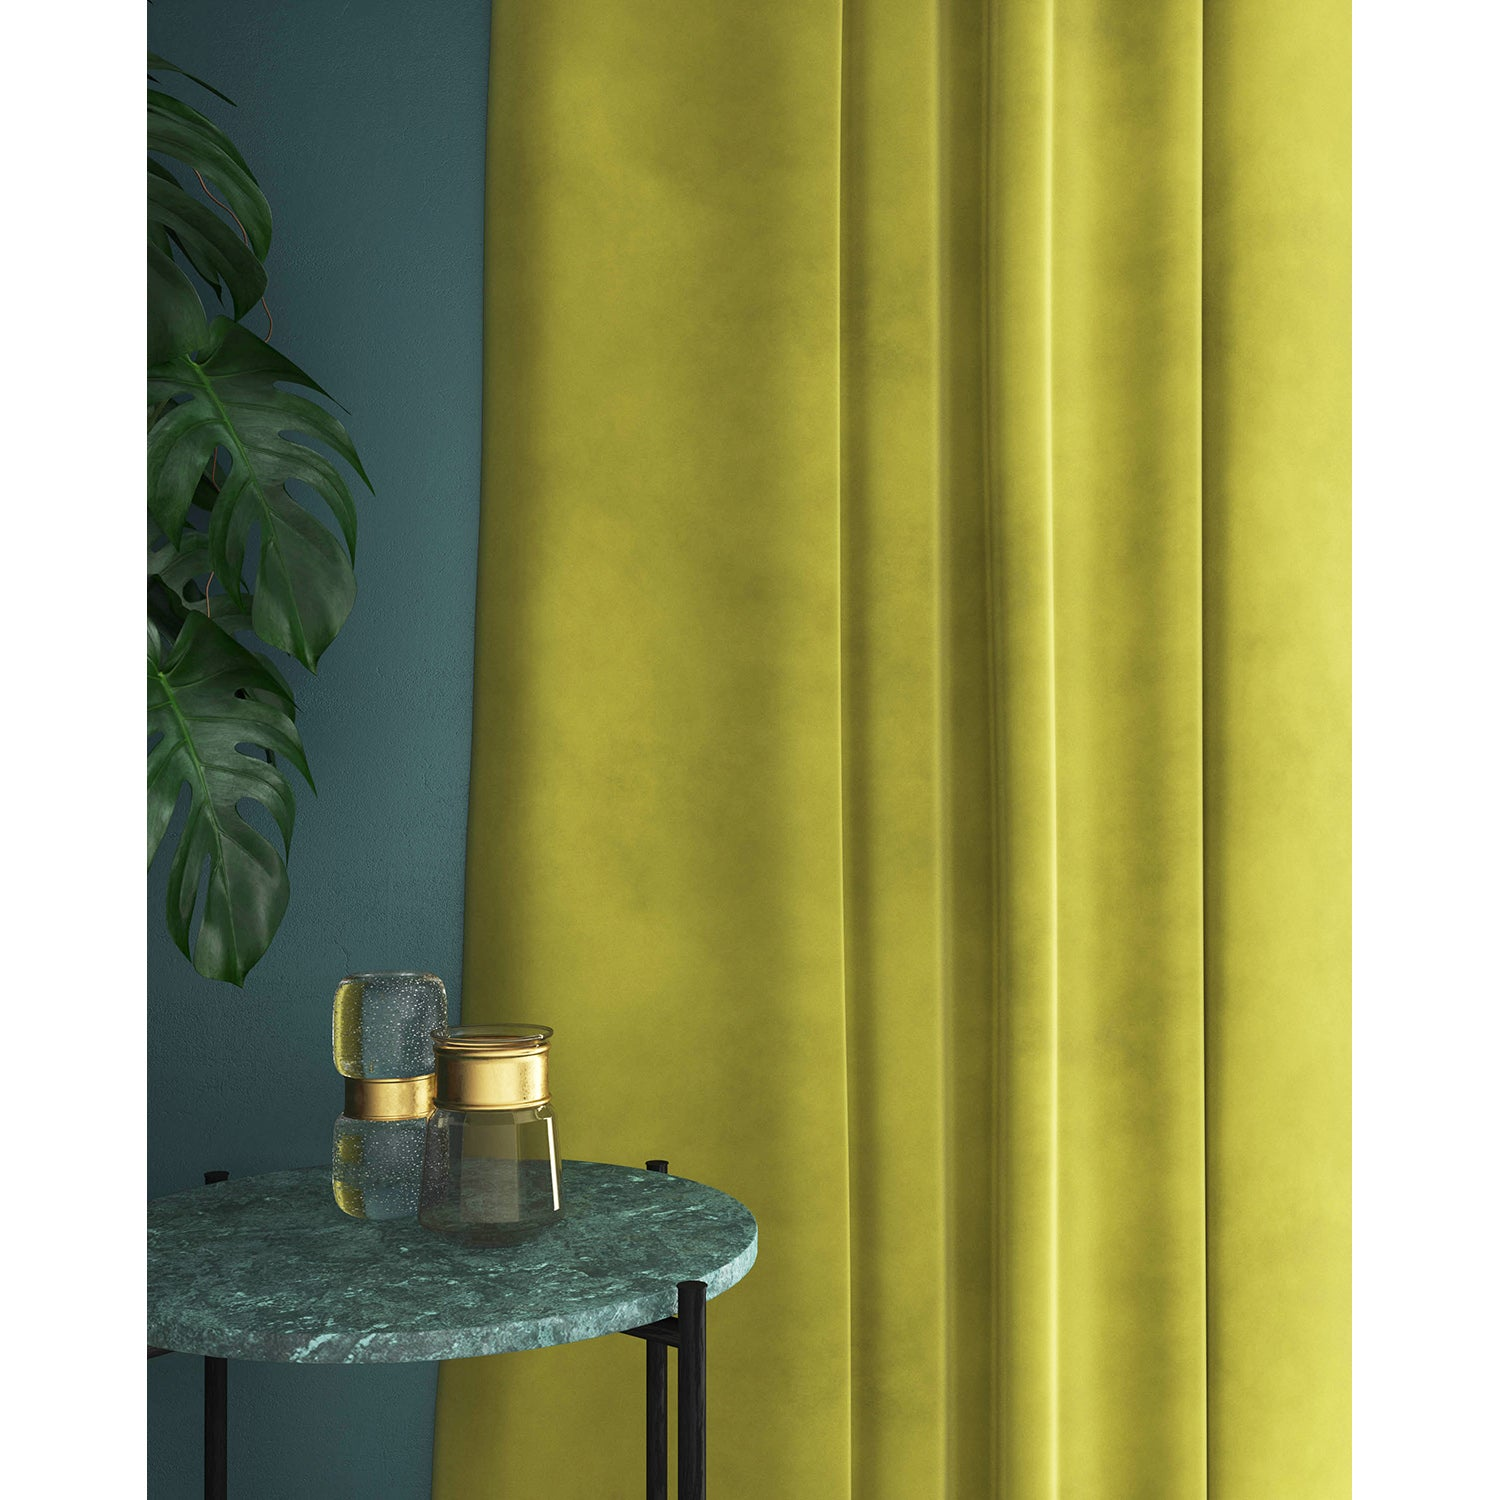 Curtains in a yellow toned green velvet fabric with a stain resist finish